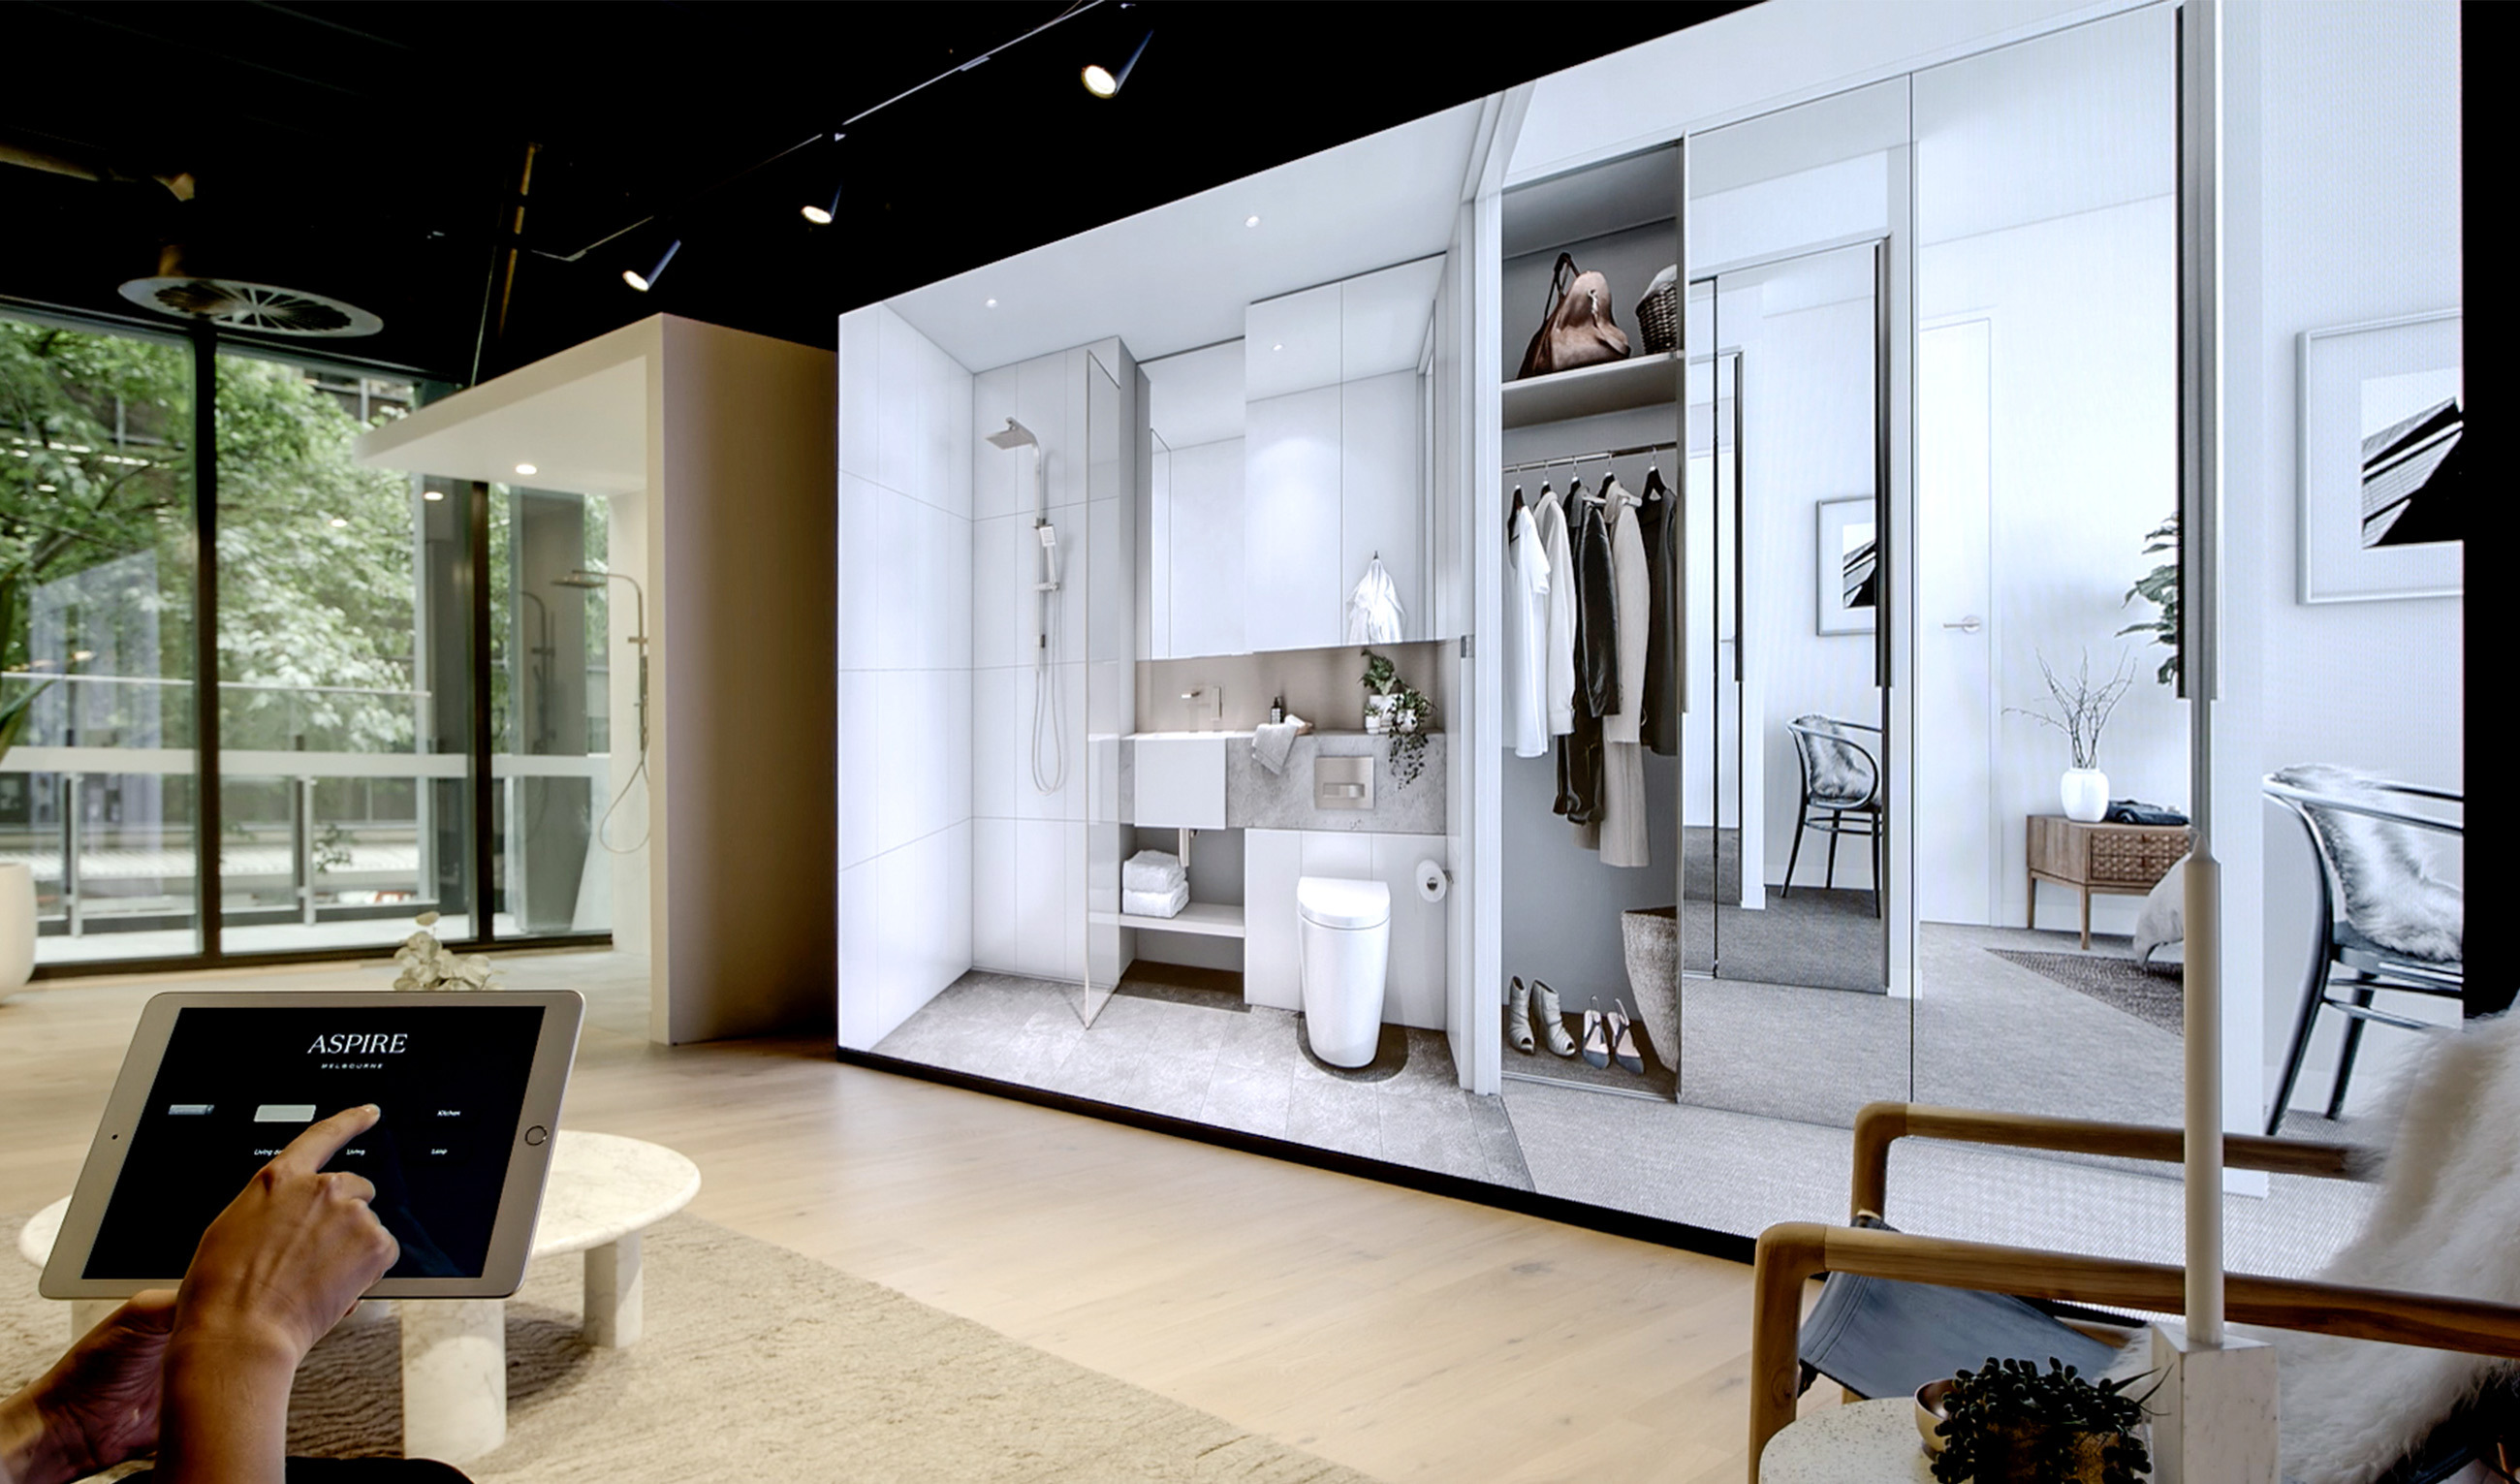 Colliers Collection - Multiple projects, one versatile Experience Suite